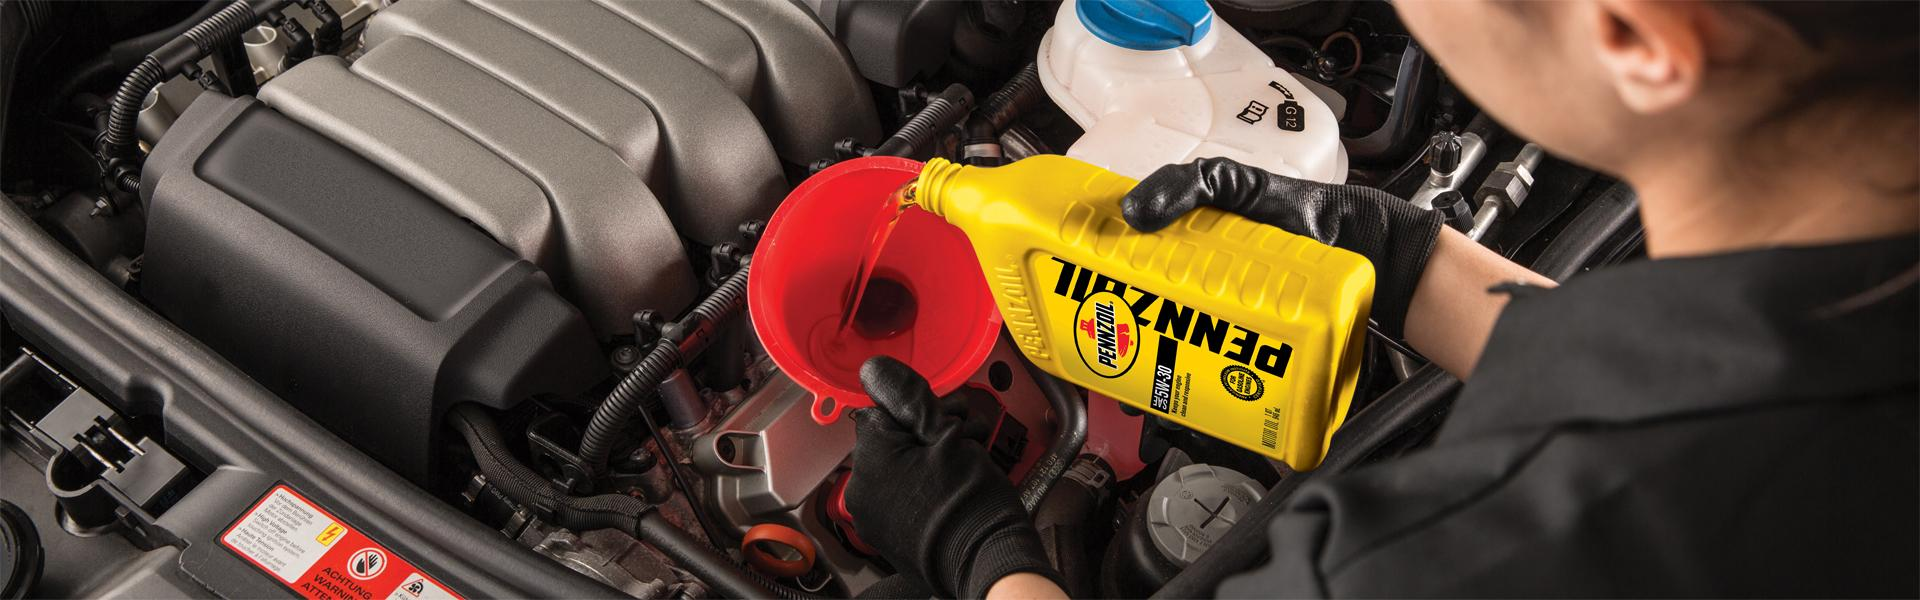 medium resolution of jiffy lube signature service oil change